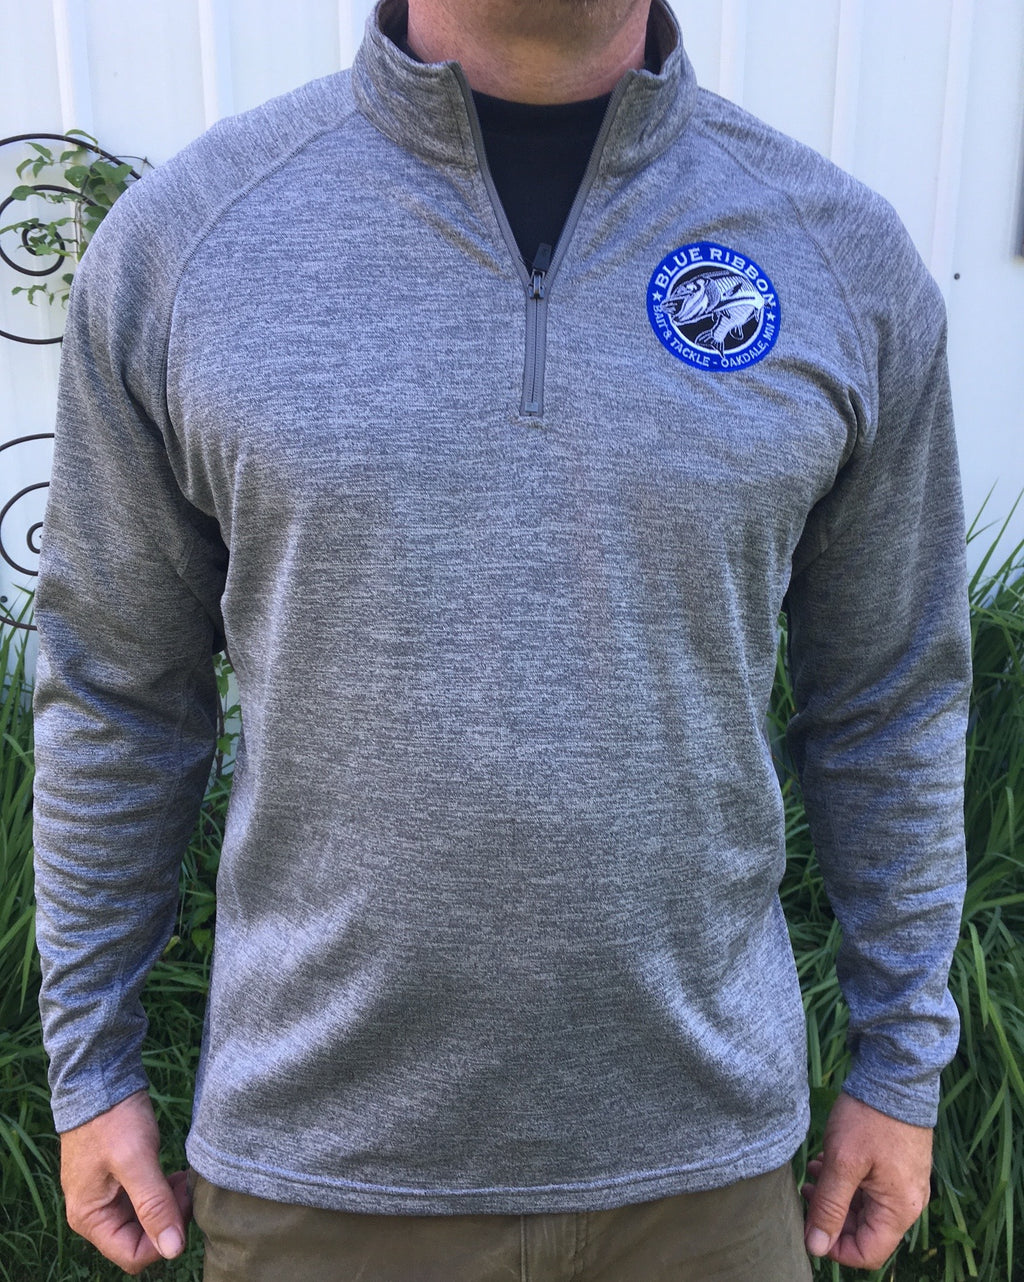 Colorado Clothing | Blue Ribbon Bait & Tackle Men's Agate Pullover -  - Colorado Clothing - Blue Ribbon Bait & Tackle